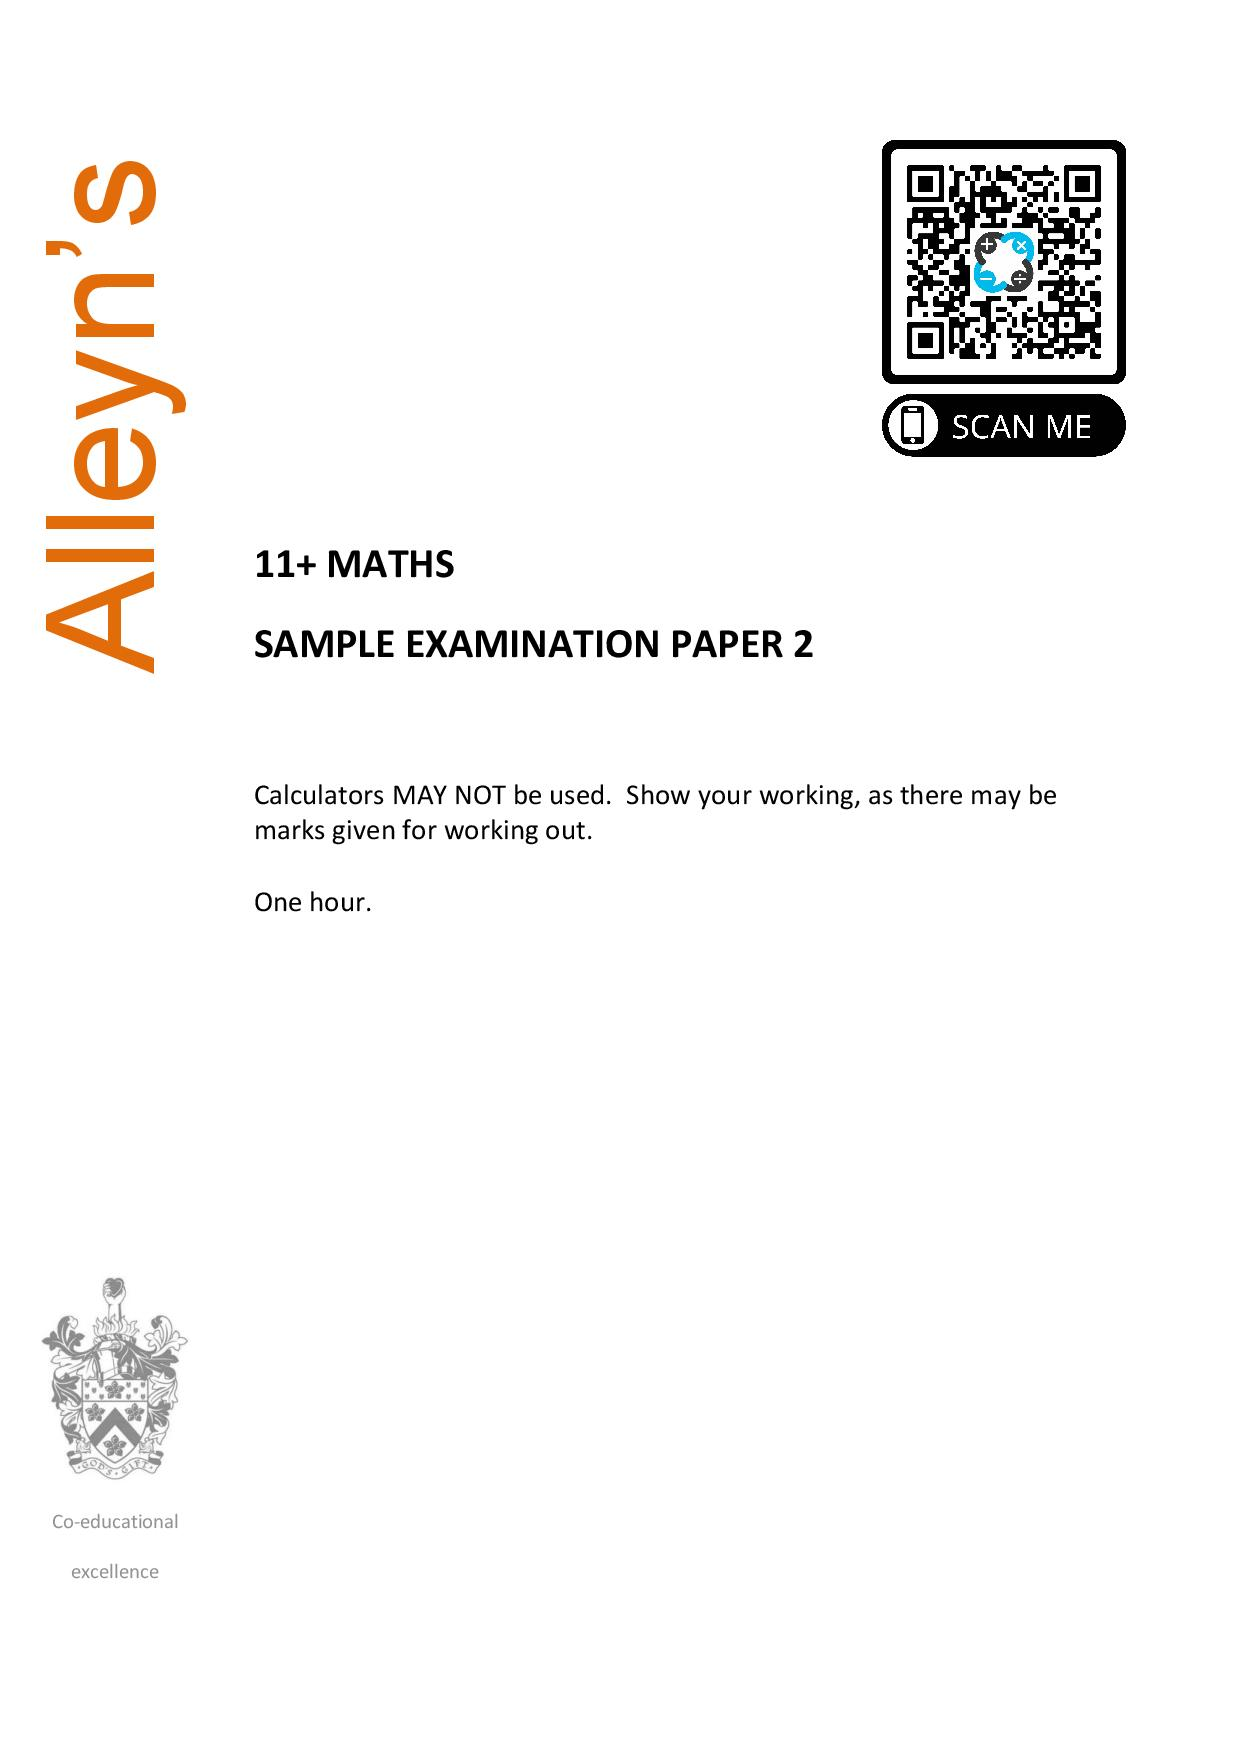 11 Maths Sample Examination Paper 2 Alleyns page 001